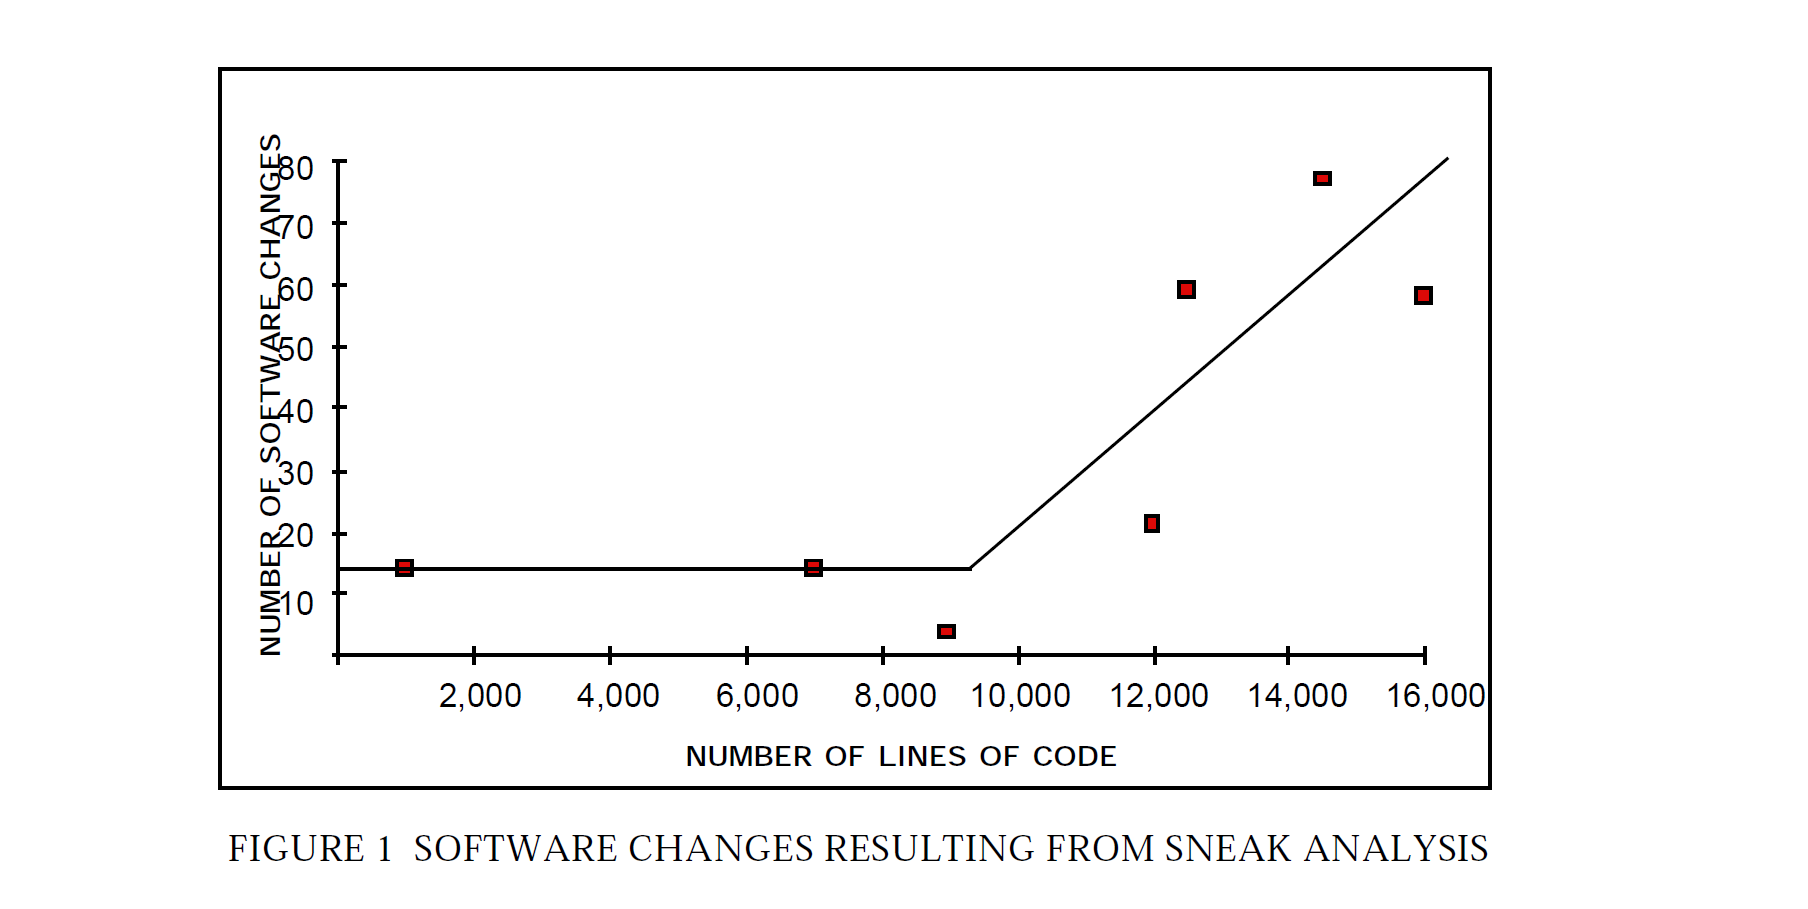 IDA Inc - Software Changes Resulting From Sneak Analsys